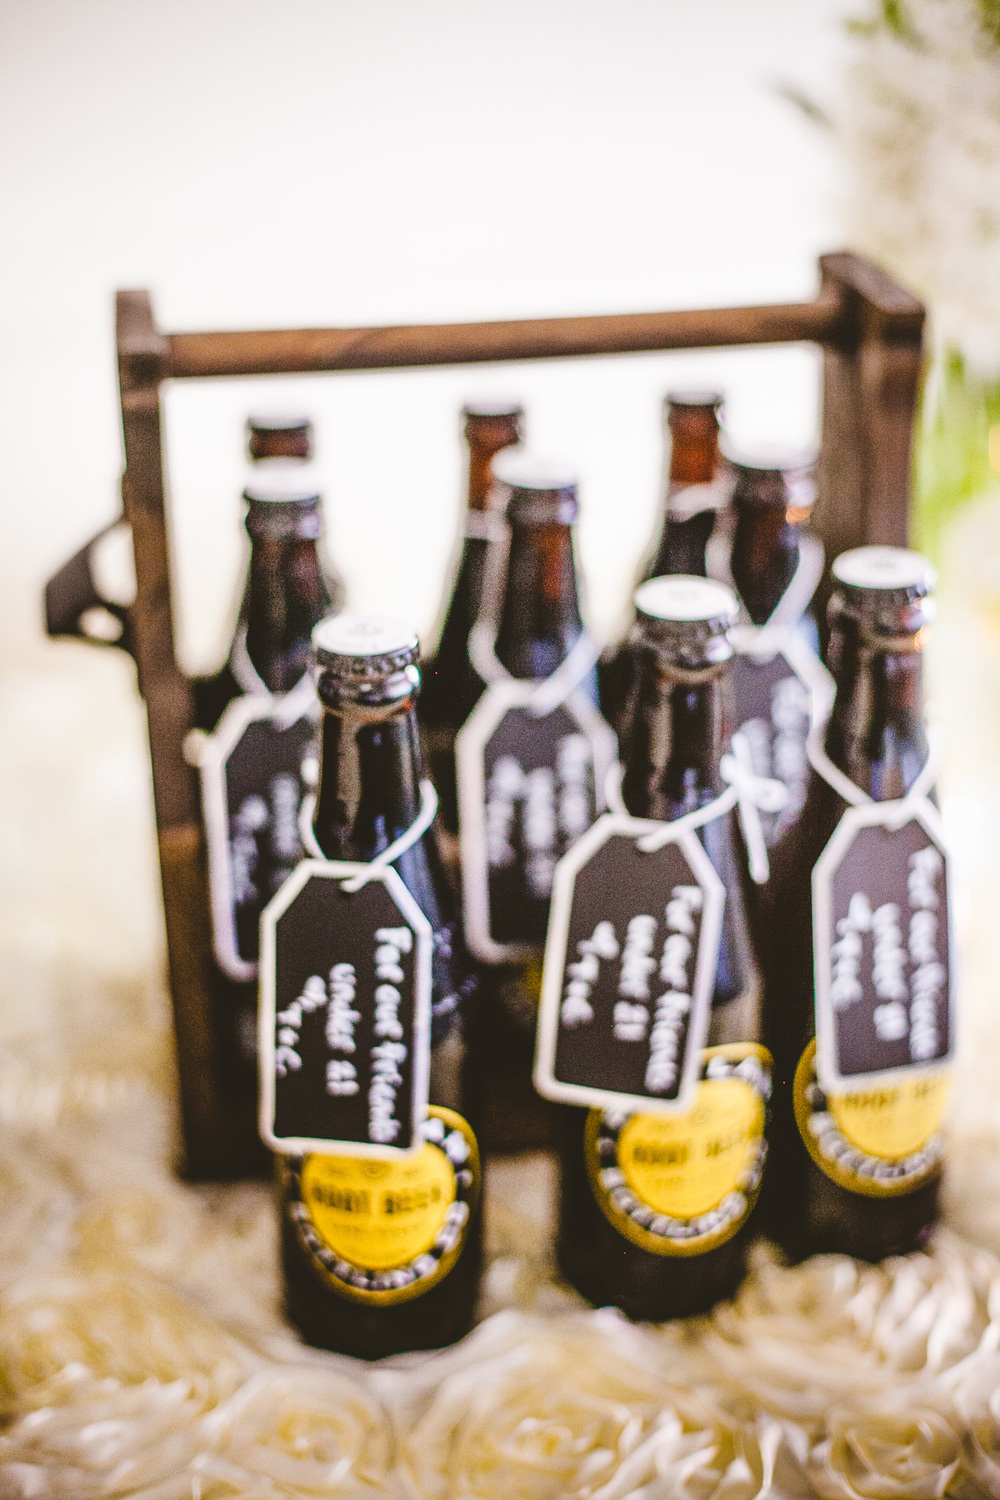 skyboxeventproductions.com | Home Brewed Beer Ideas | DIY Weddings in California | Skybox Event Productions